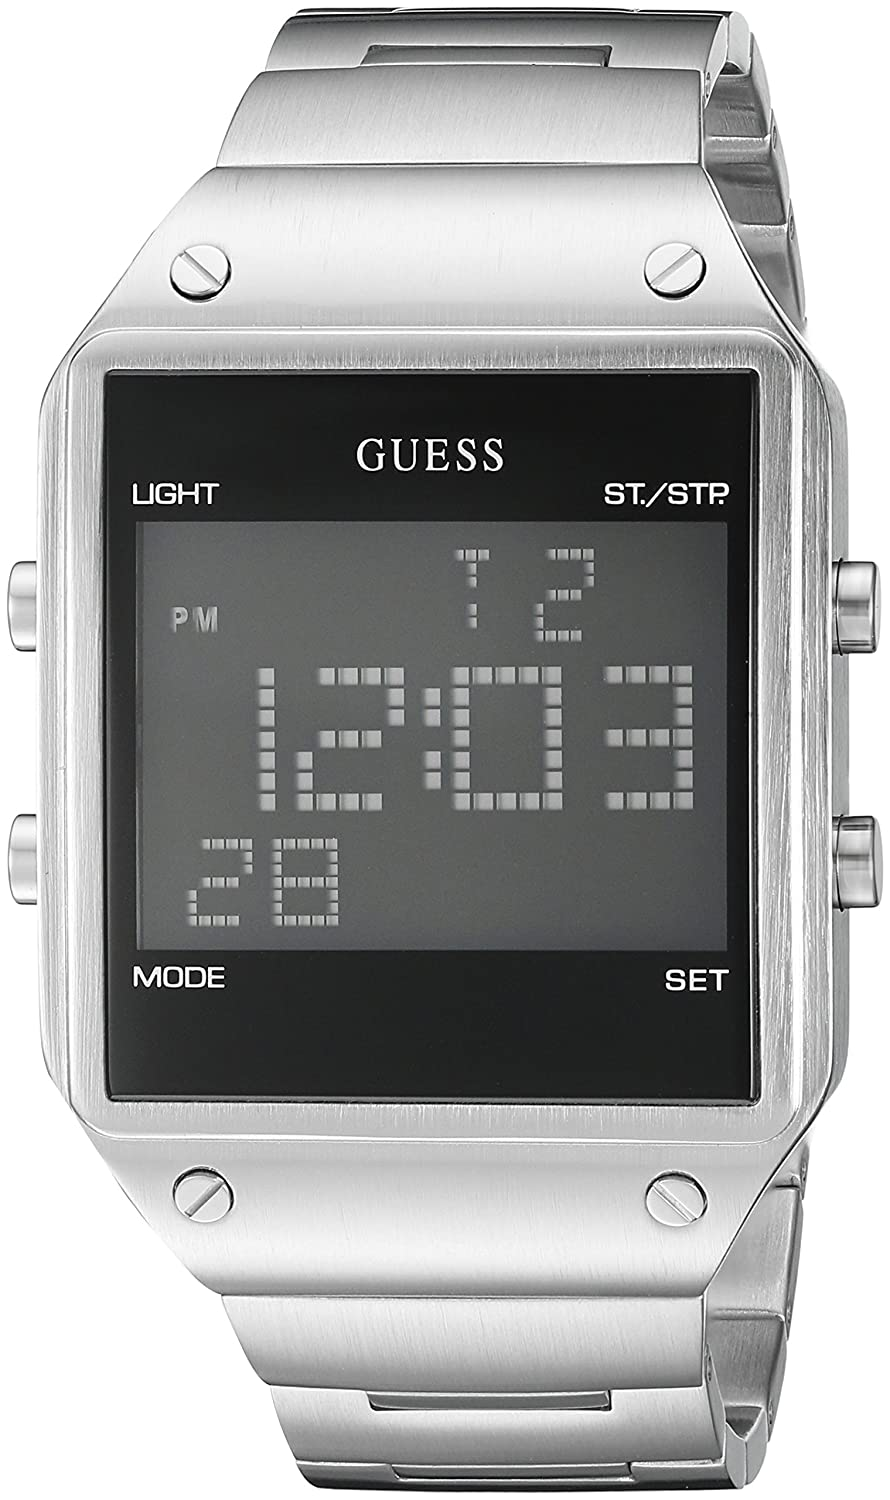 Amazon.com: GUESS Mens U0596G1 Digital Display Silver-Tone Watch with Alarm, Dual Time Zone & Chronograph / Stop Watch Functions: Watches